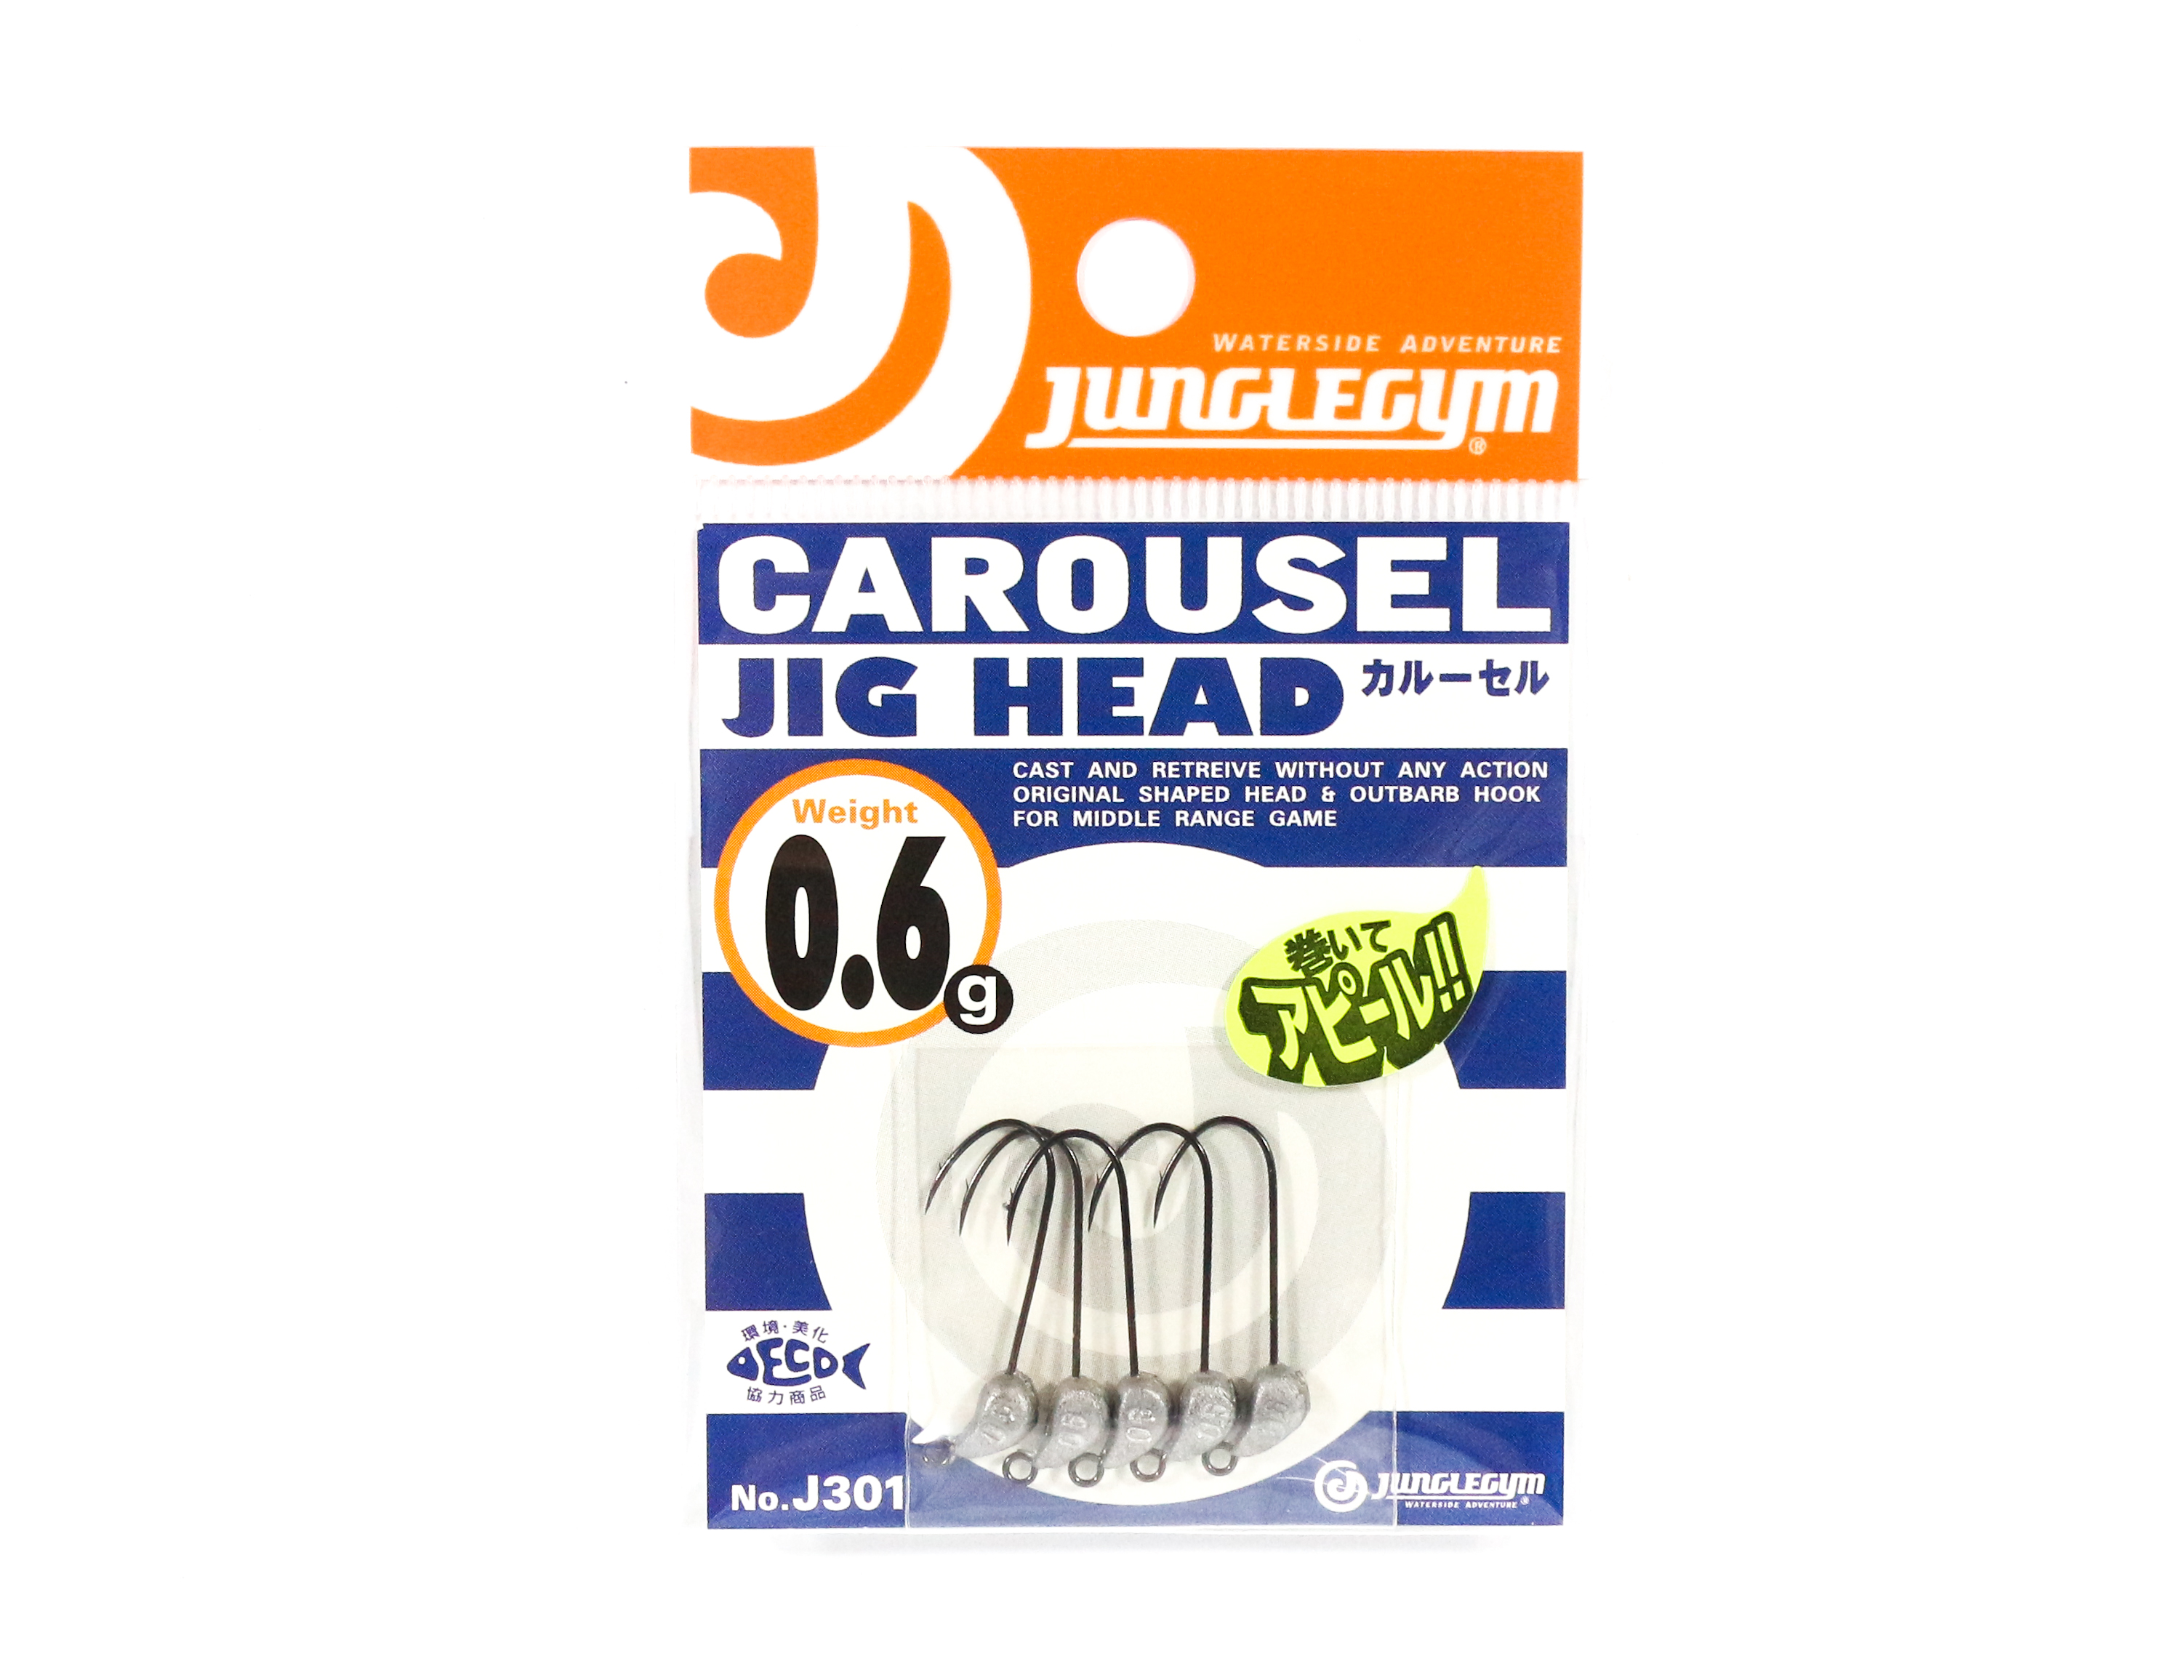 Jungle Gym J301 Jig Head Carousel 0.6 grams Hook Size 5 (7611)